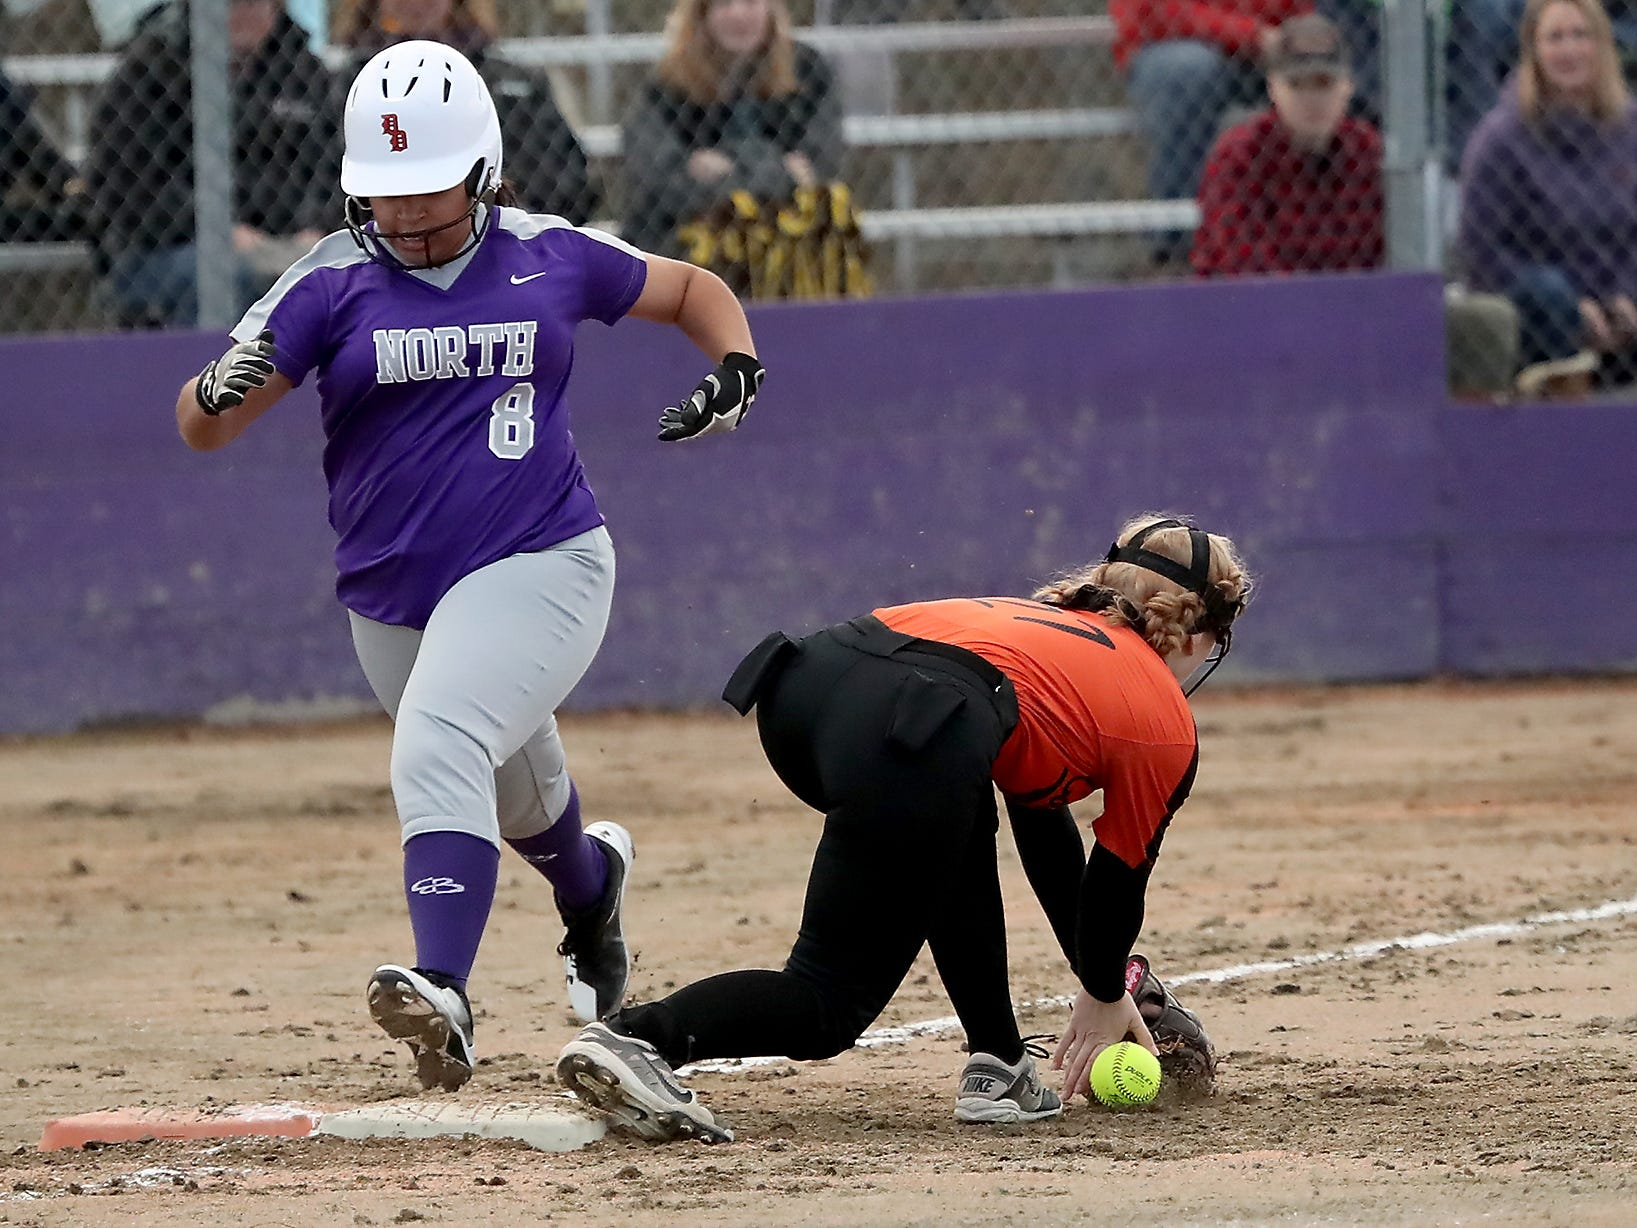 North Kitsap's Alicia Goetz is safe at first as Central Kitsap's Gabby Story misses the ball in Poulsbo on Wednesday, March 13, 2019.